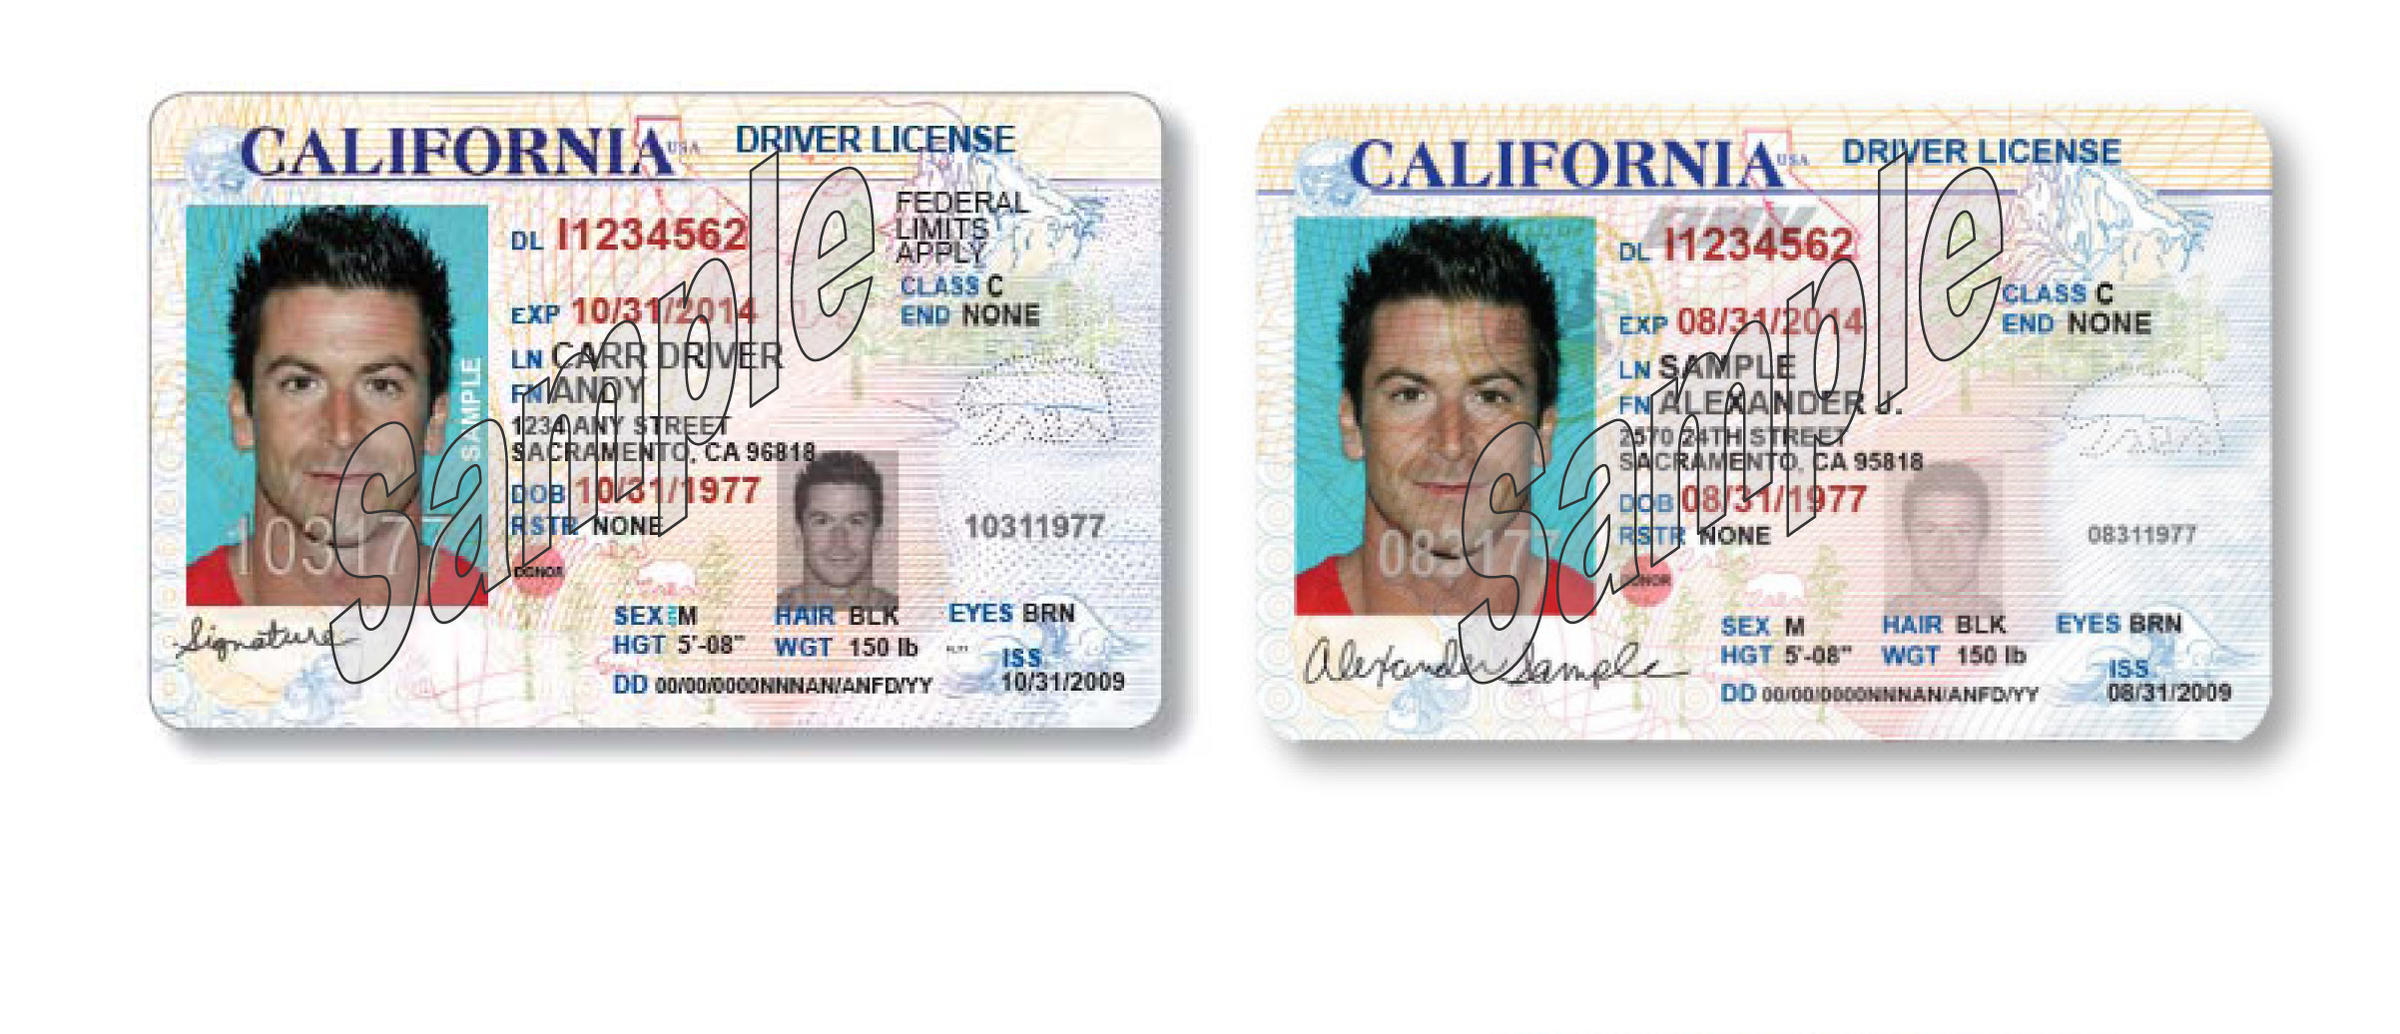 Problems With Renewing My Drivers License Page 2 The